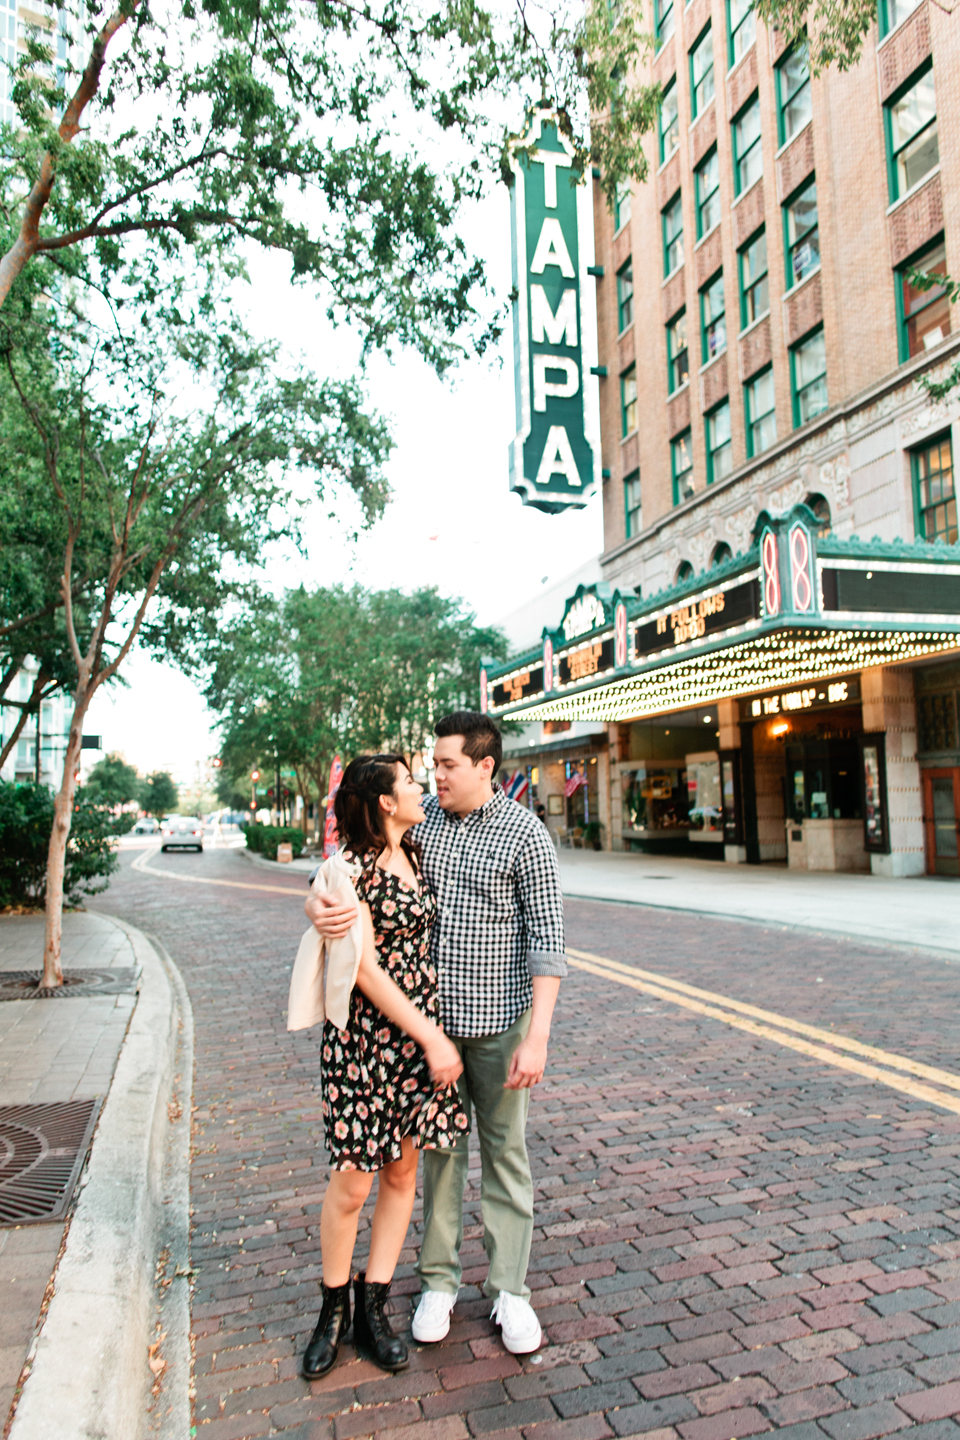 Image of an engaged couple in front of the Tampa Theater, downtown Tampa, Florida.